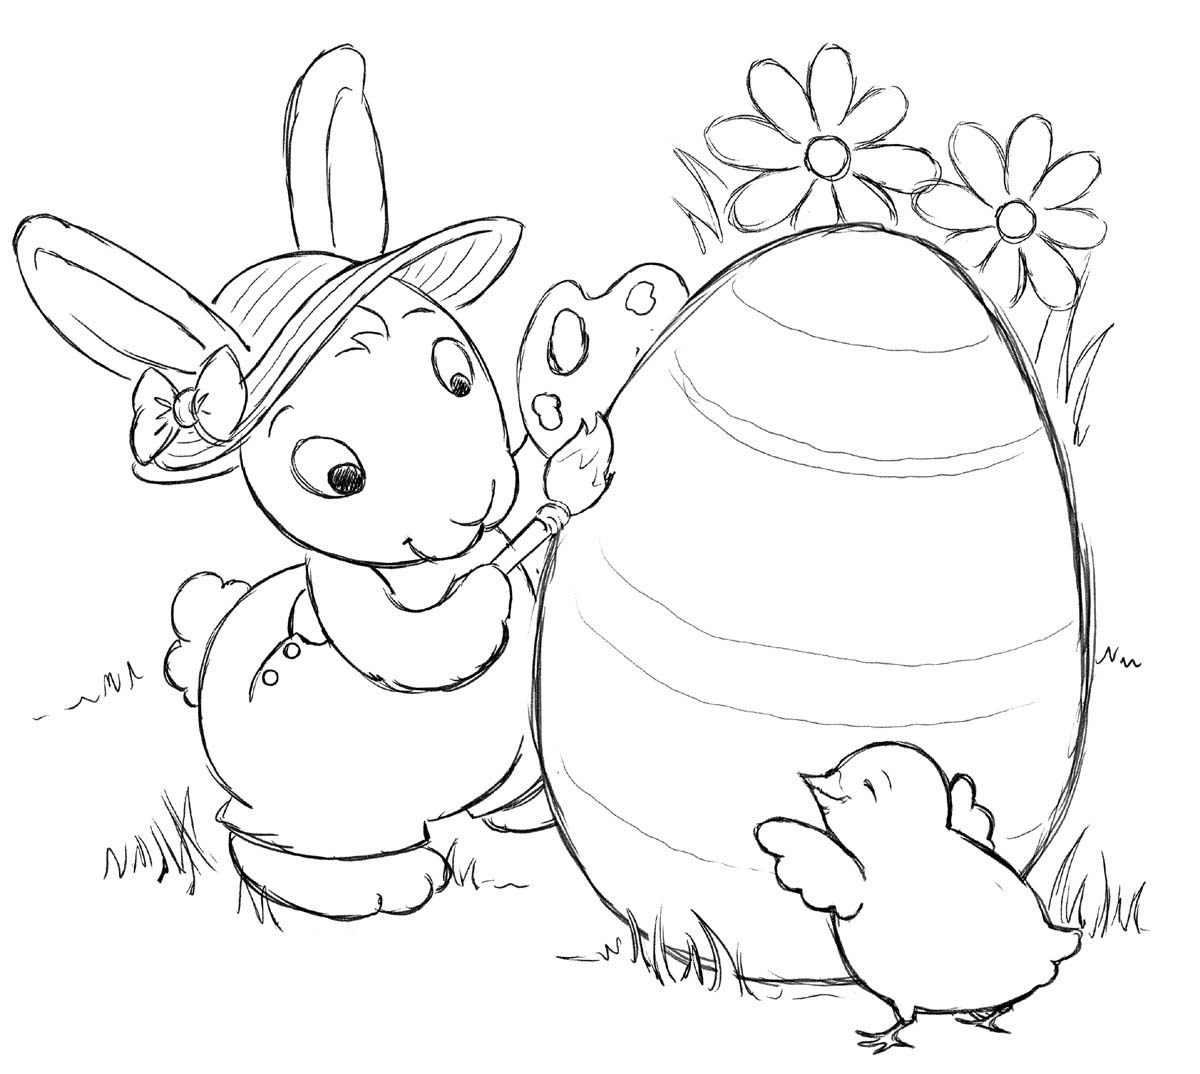 Bunny Rabbits Coloring Pages First-School Preschool